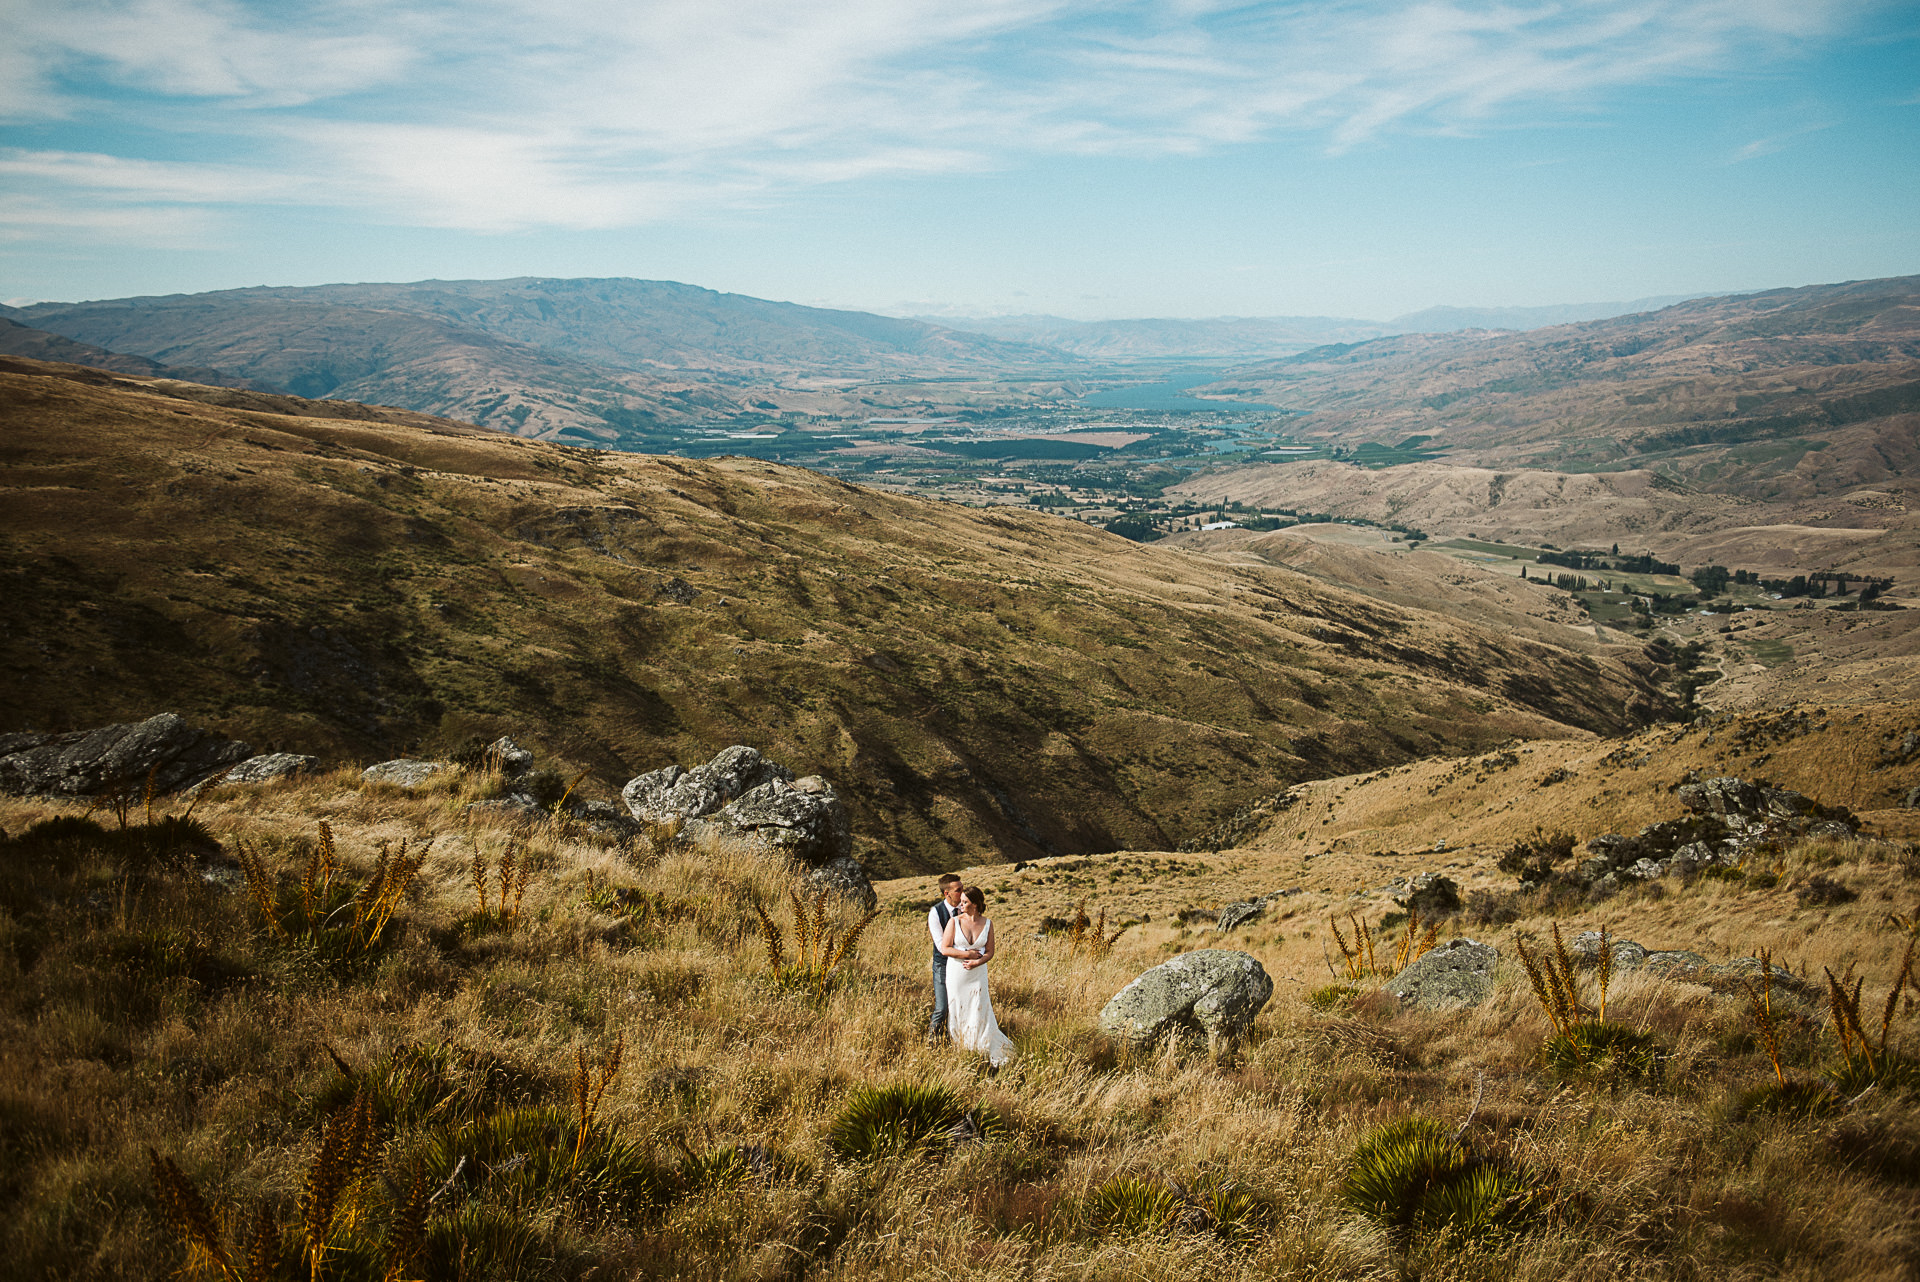 CENTRAL OTAGO  Another secret that skips past the limelight. You'll encounter incredible rocky landscapes coated in some of the most golden tussocks you'll find anywhere in the world. We'll also stop by some historical buildings and the mighty Clutha River.